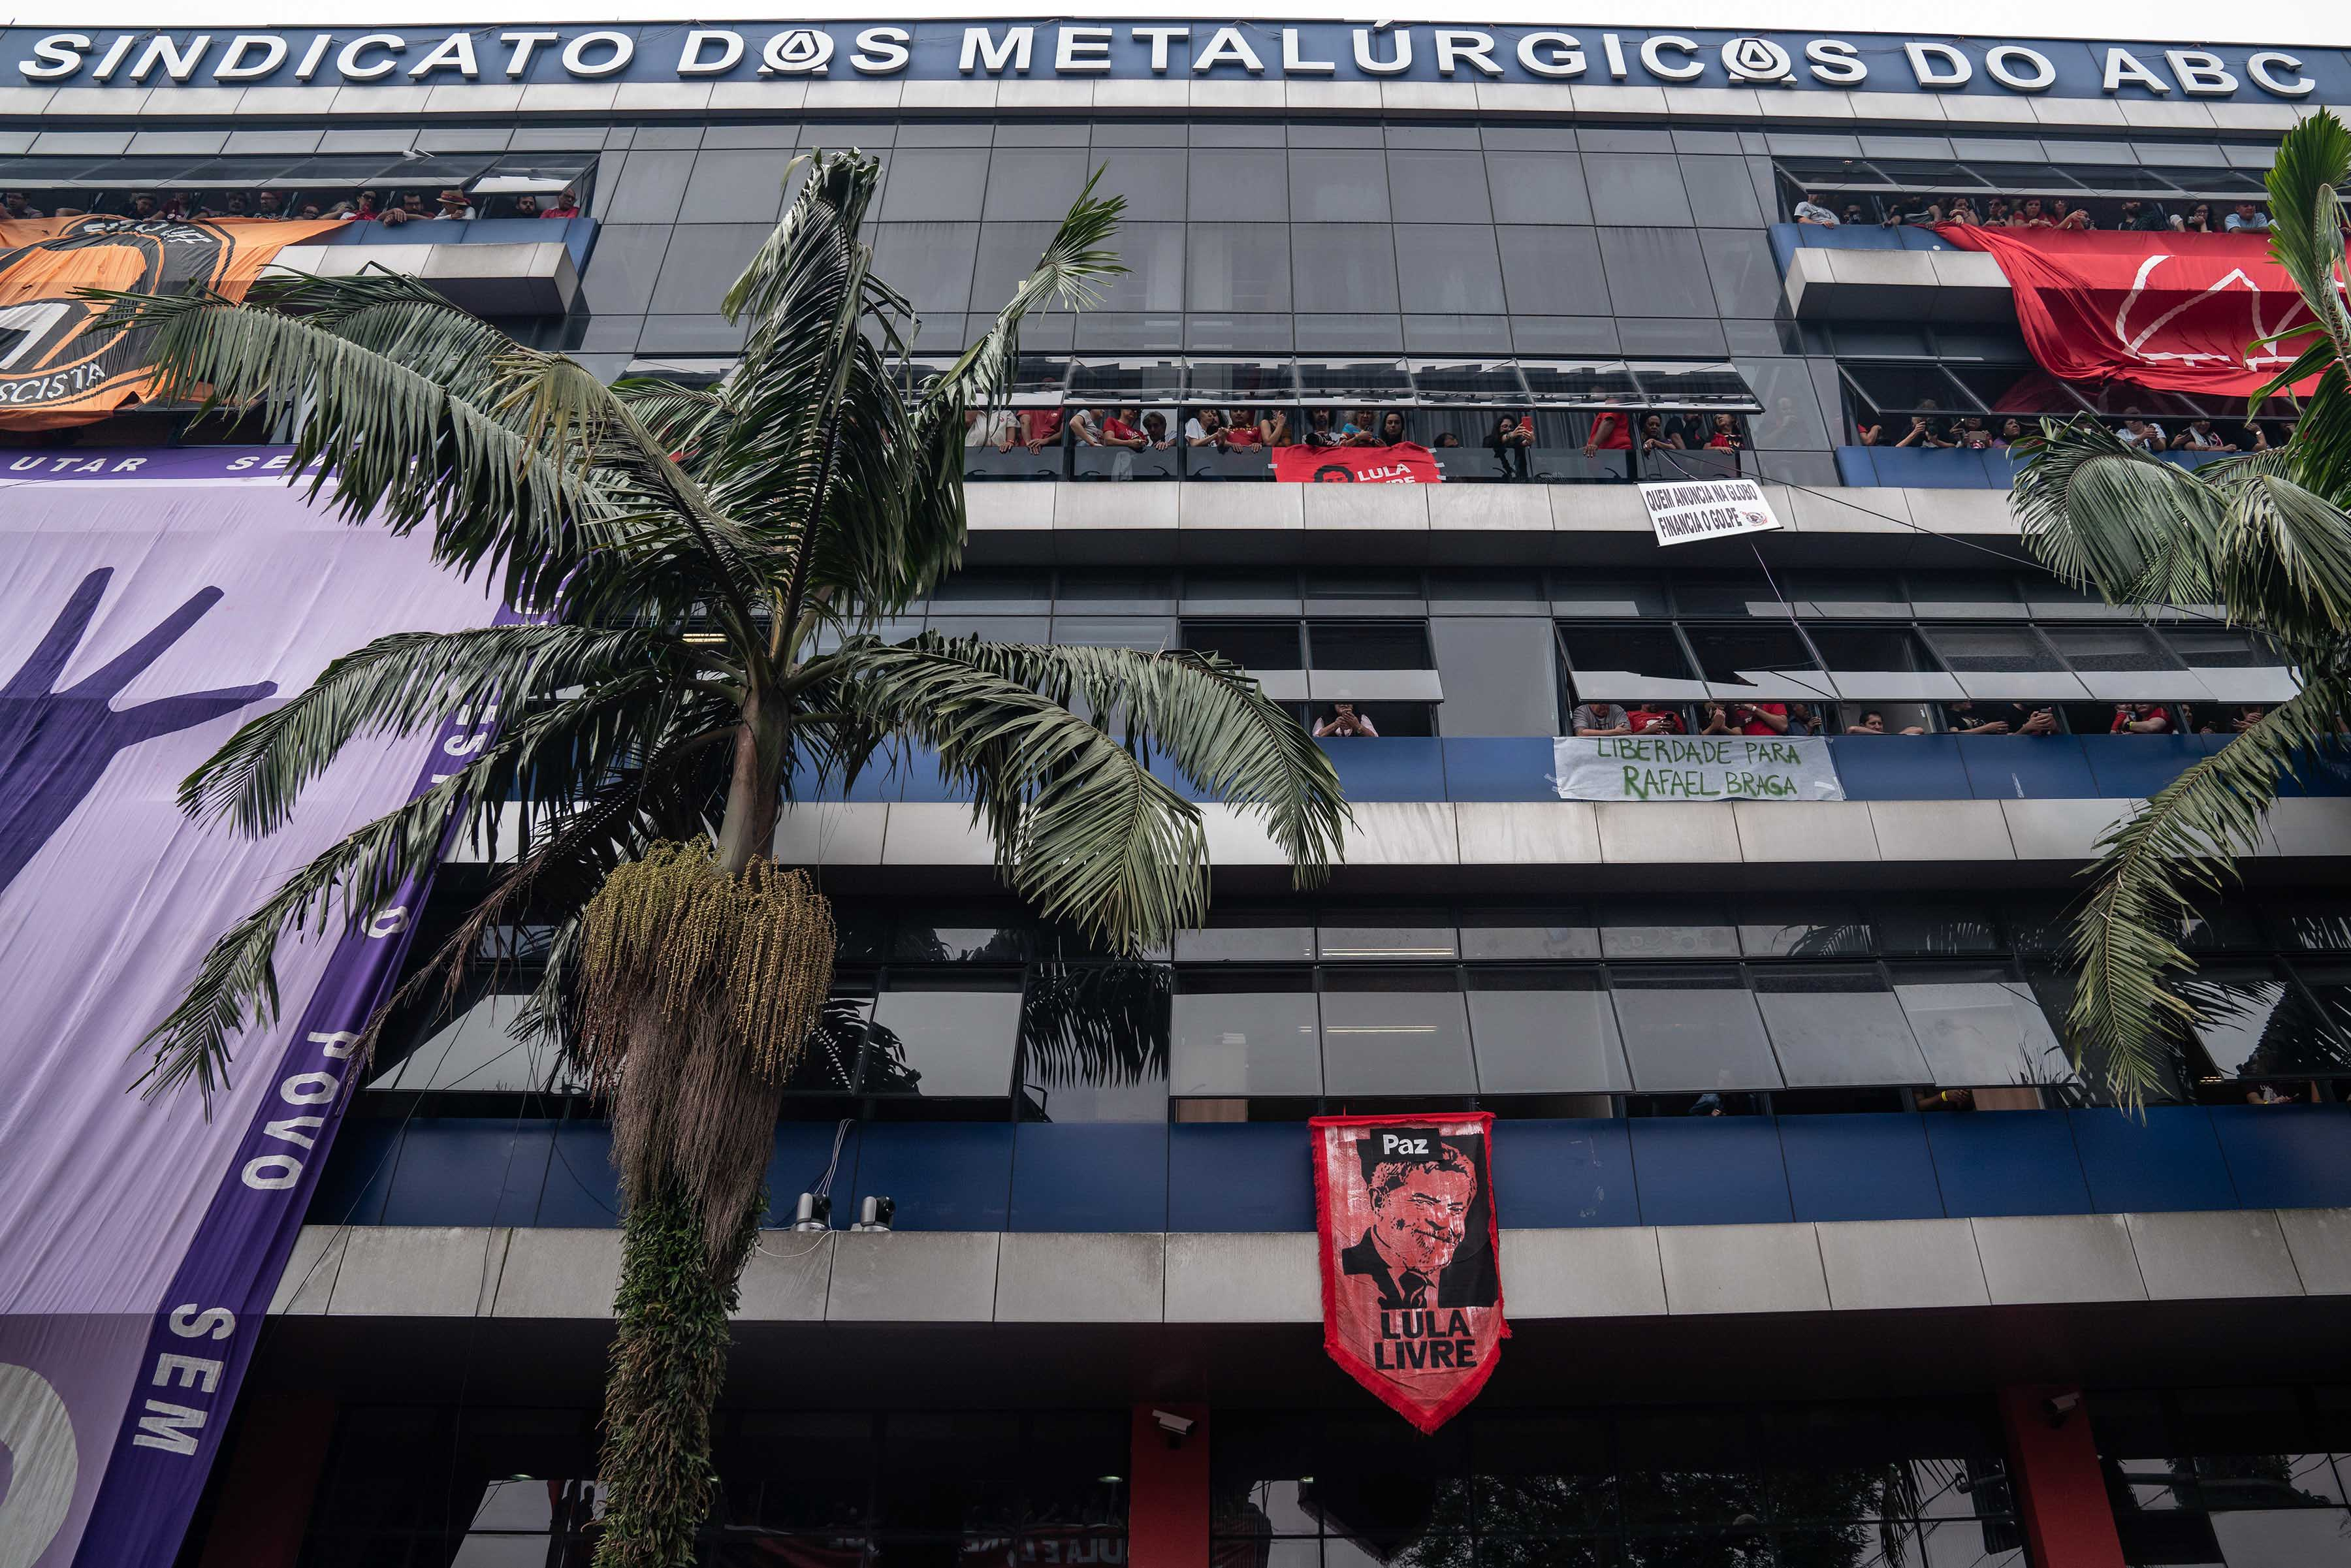 9 November 2019: People peer down from the windows of the ABC Metalworkers Union headquarters in the south of São Paulo, where a massive rally celebrated Lula's release.